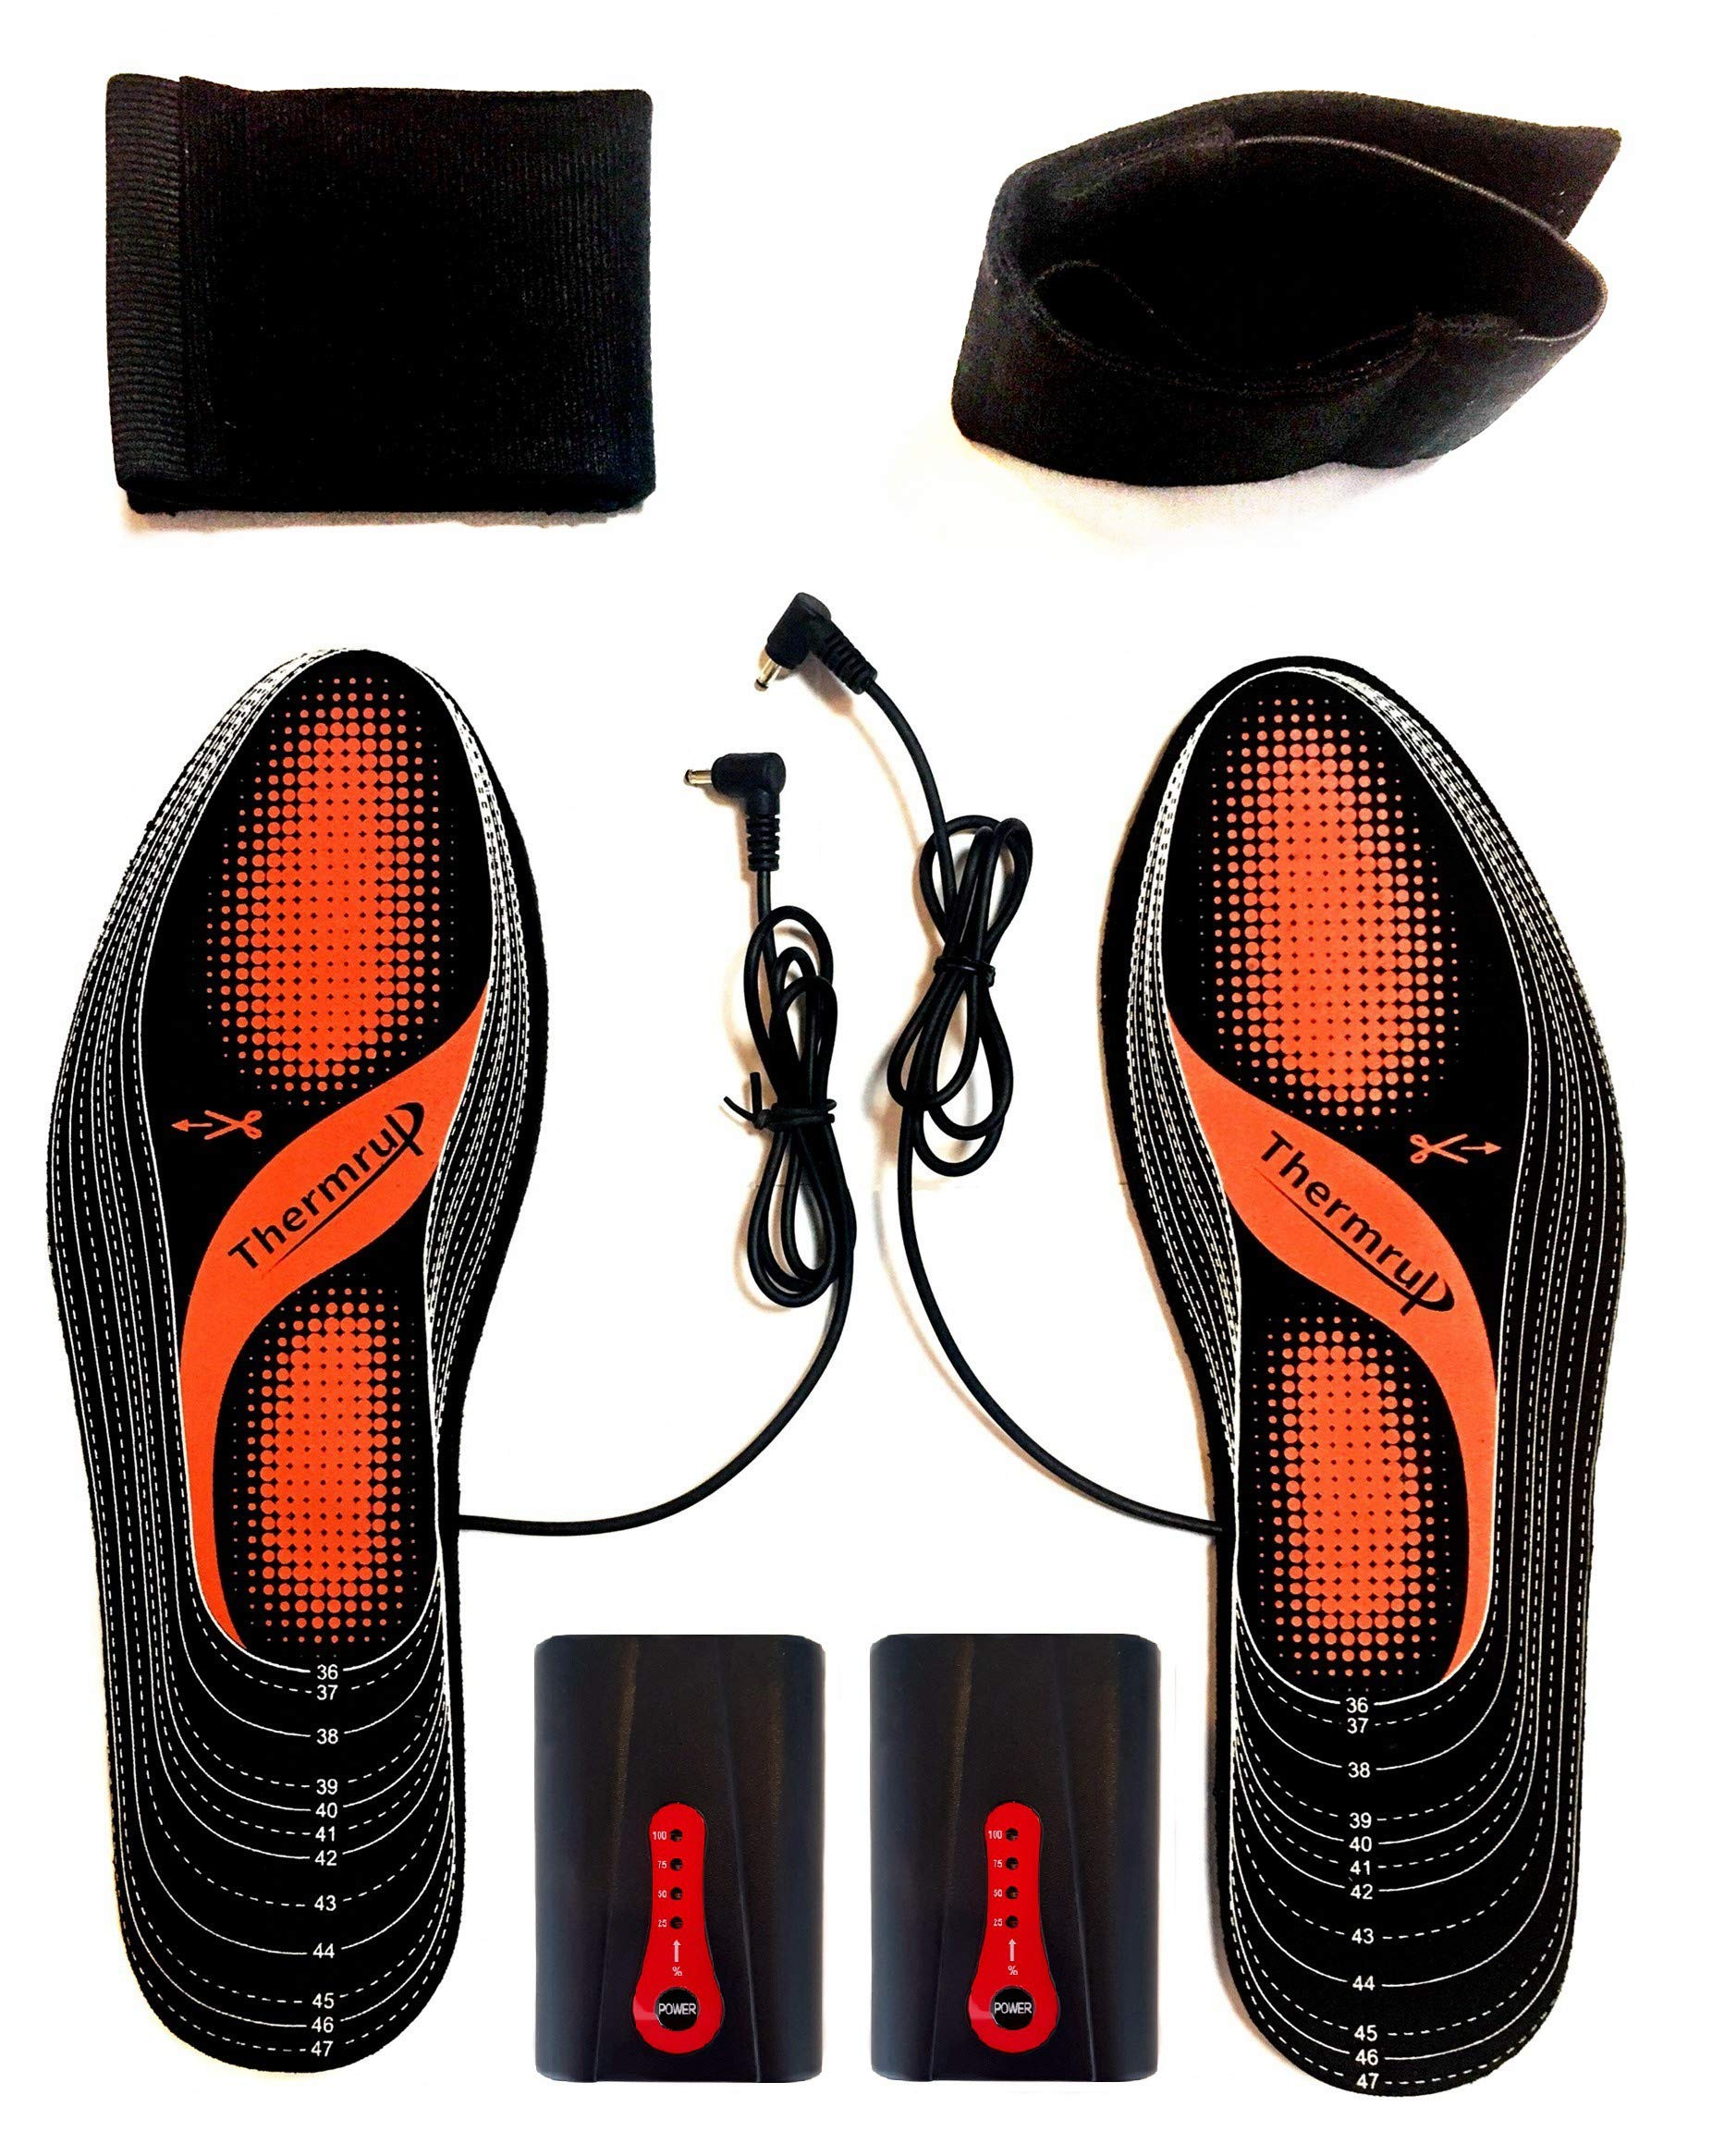 Thermrup Electric Heated Insole Foot Warmers Washable 5.5-12.5, Battery Operated(4 Levels),high Temperature! by Thermrup